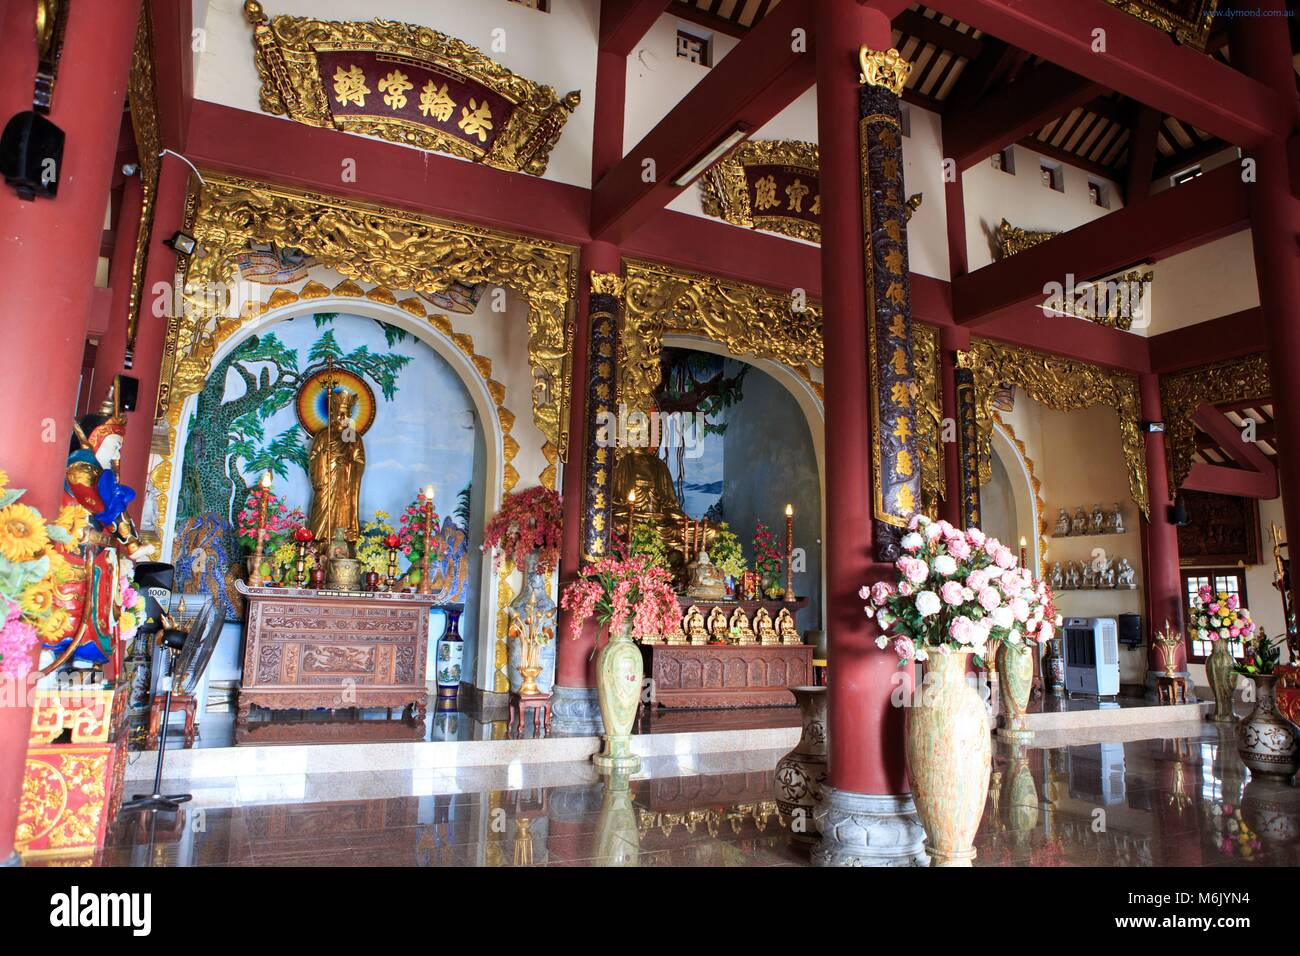 The inside of the Linh Ung Pagoda, Da Nang - Stock Image